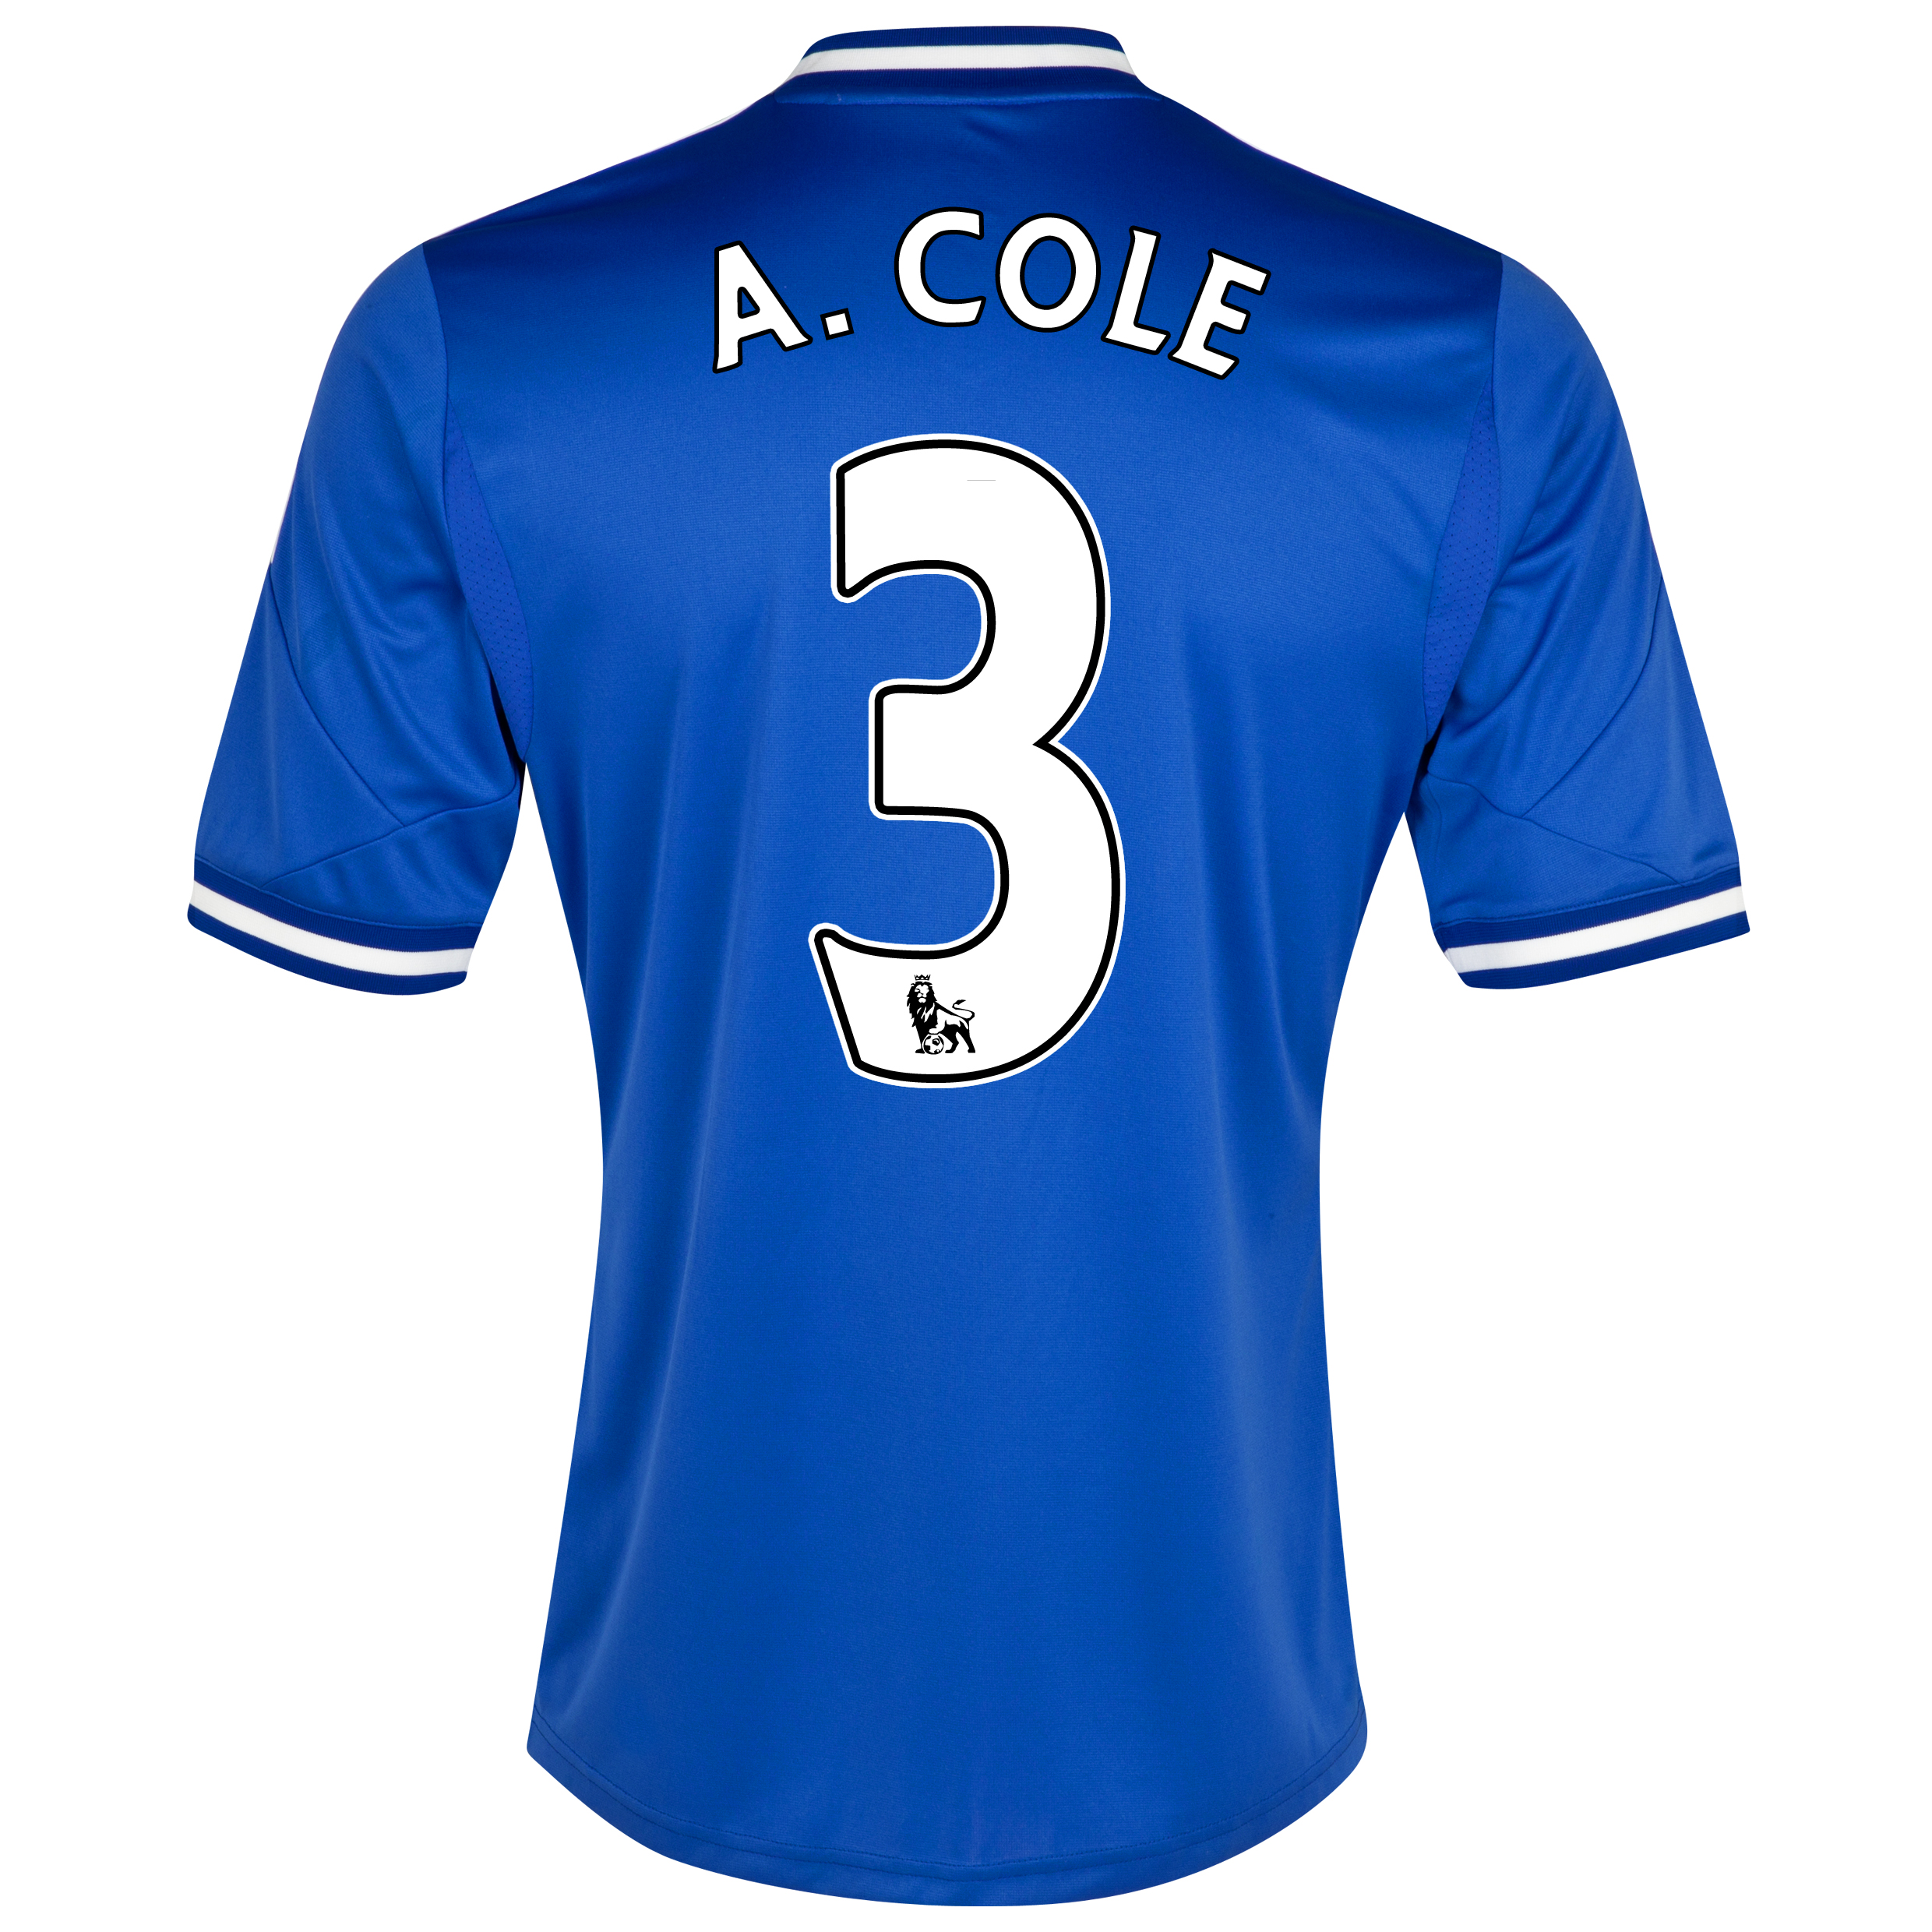 Chelsea Home Shirt 2013/14 - Outsize with A.Cole 3 printing